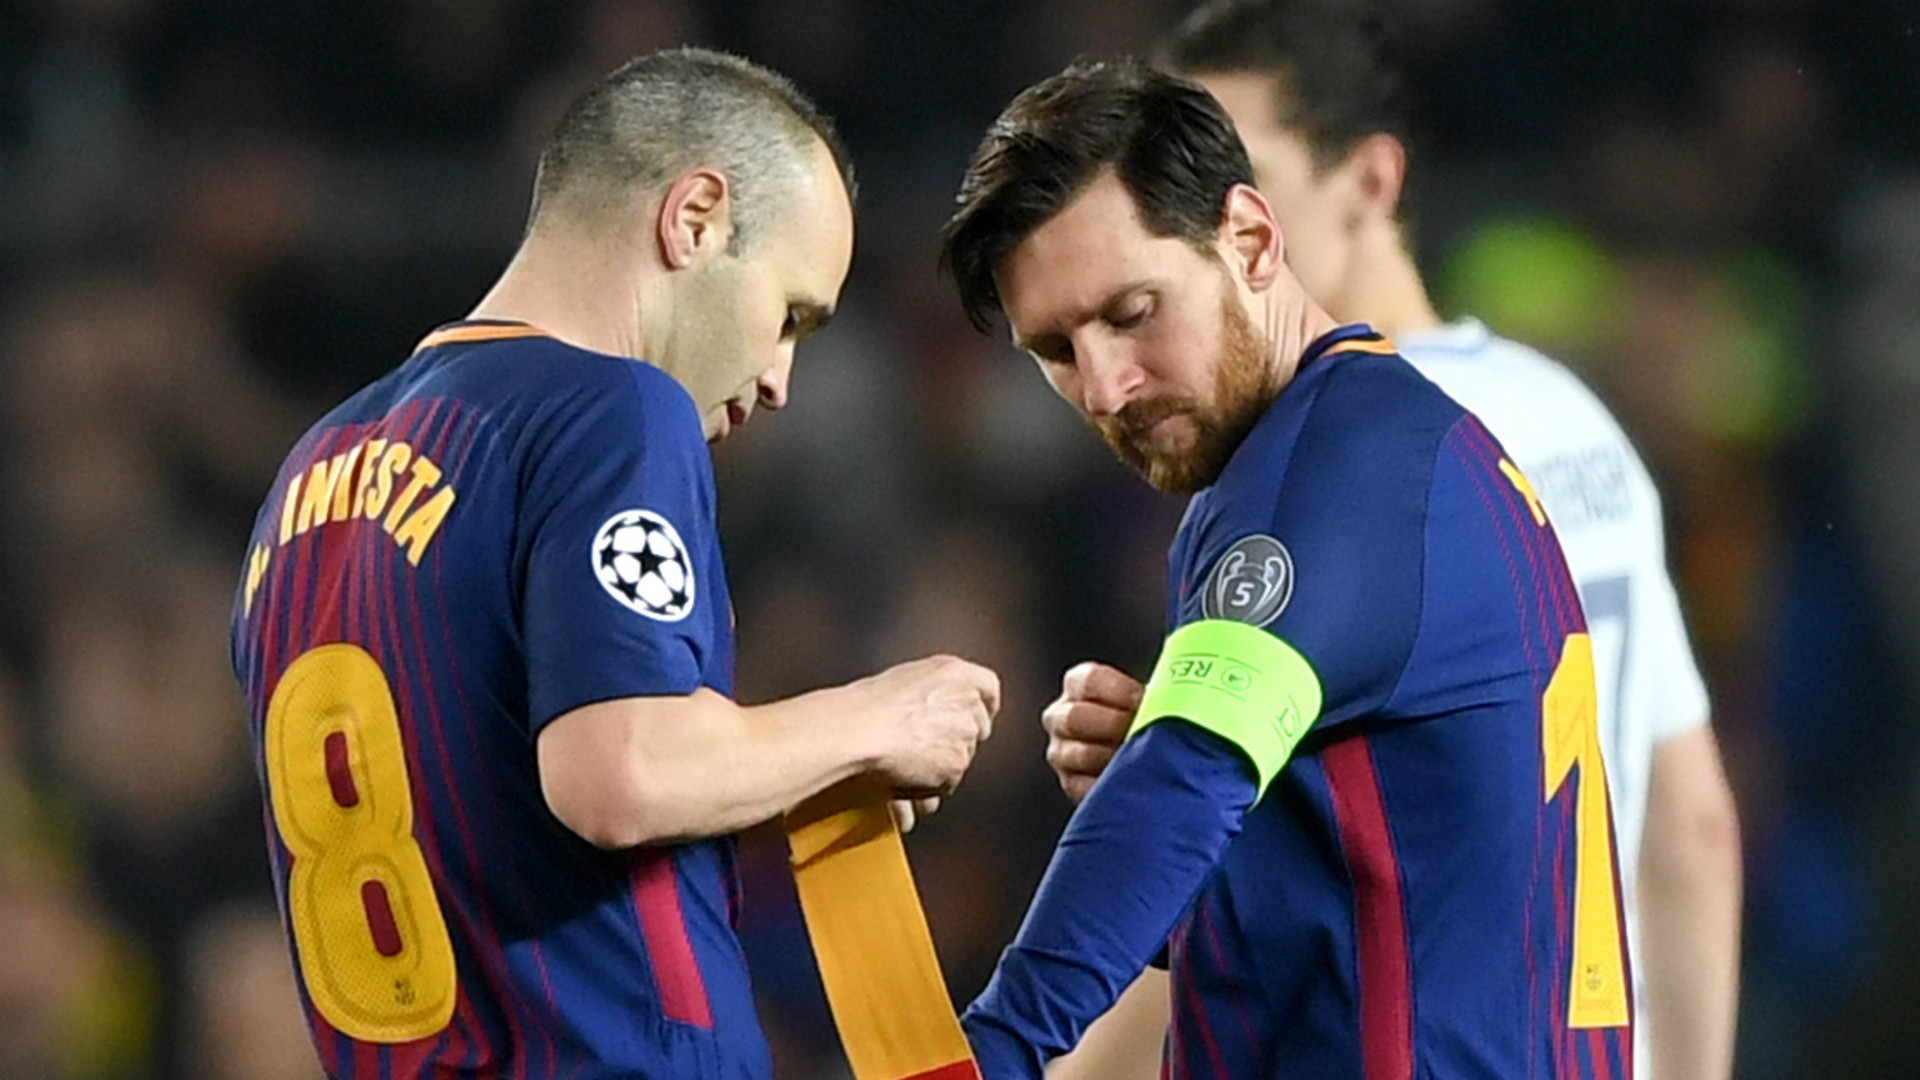 'Training with Messi & Iniesta was brutal!' – Denis Suarez has no regrets over trading Man City for Barcelona